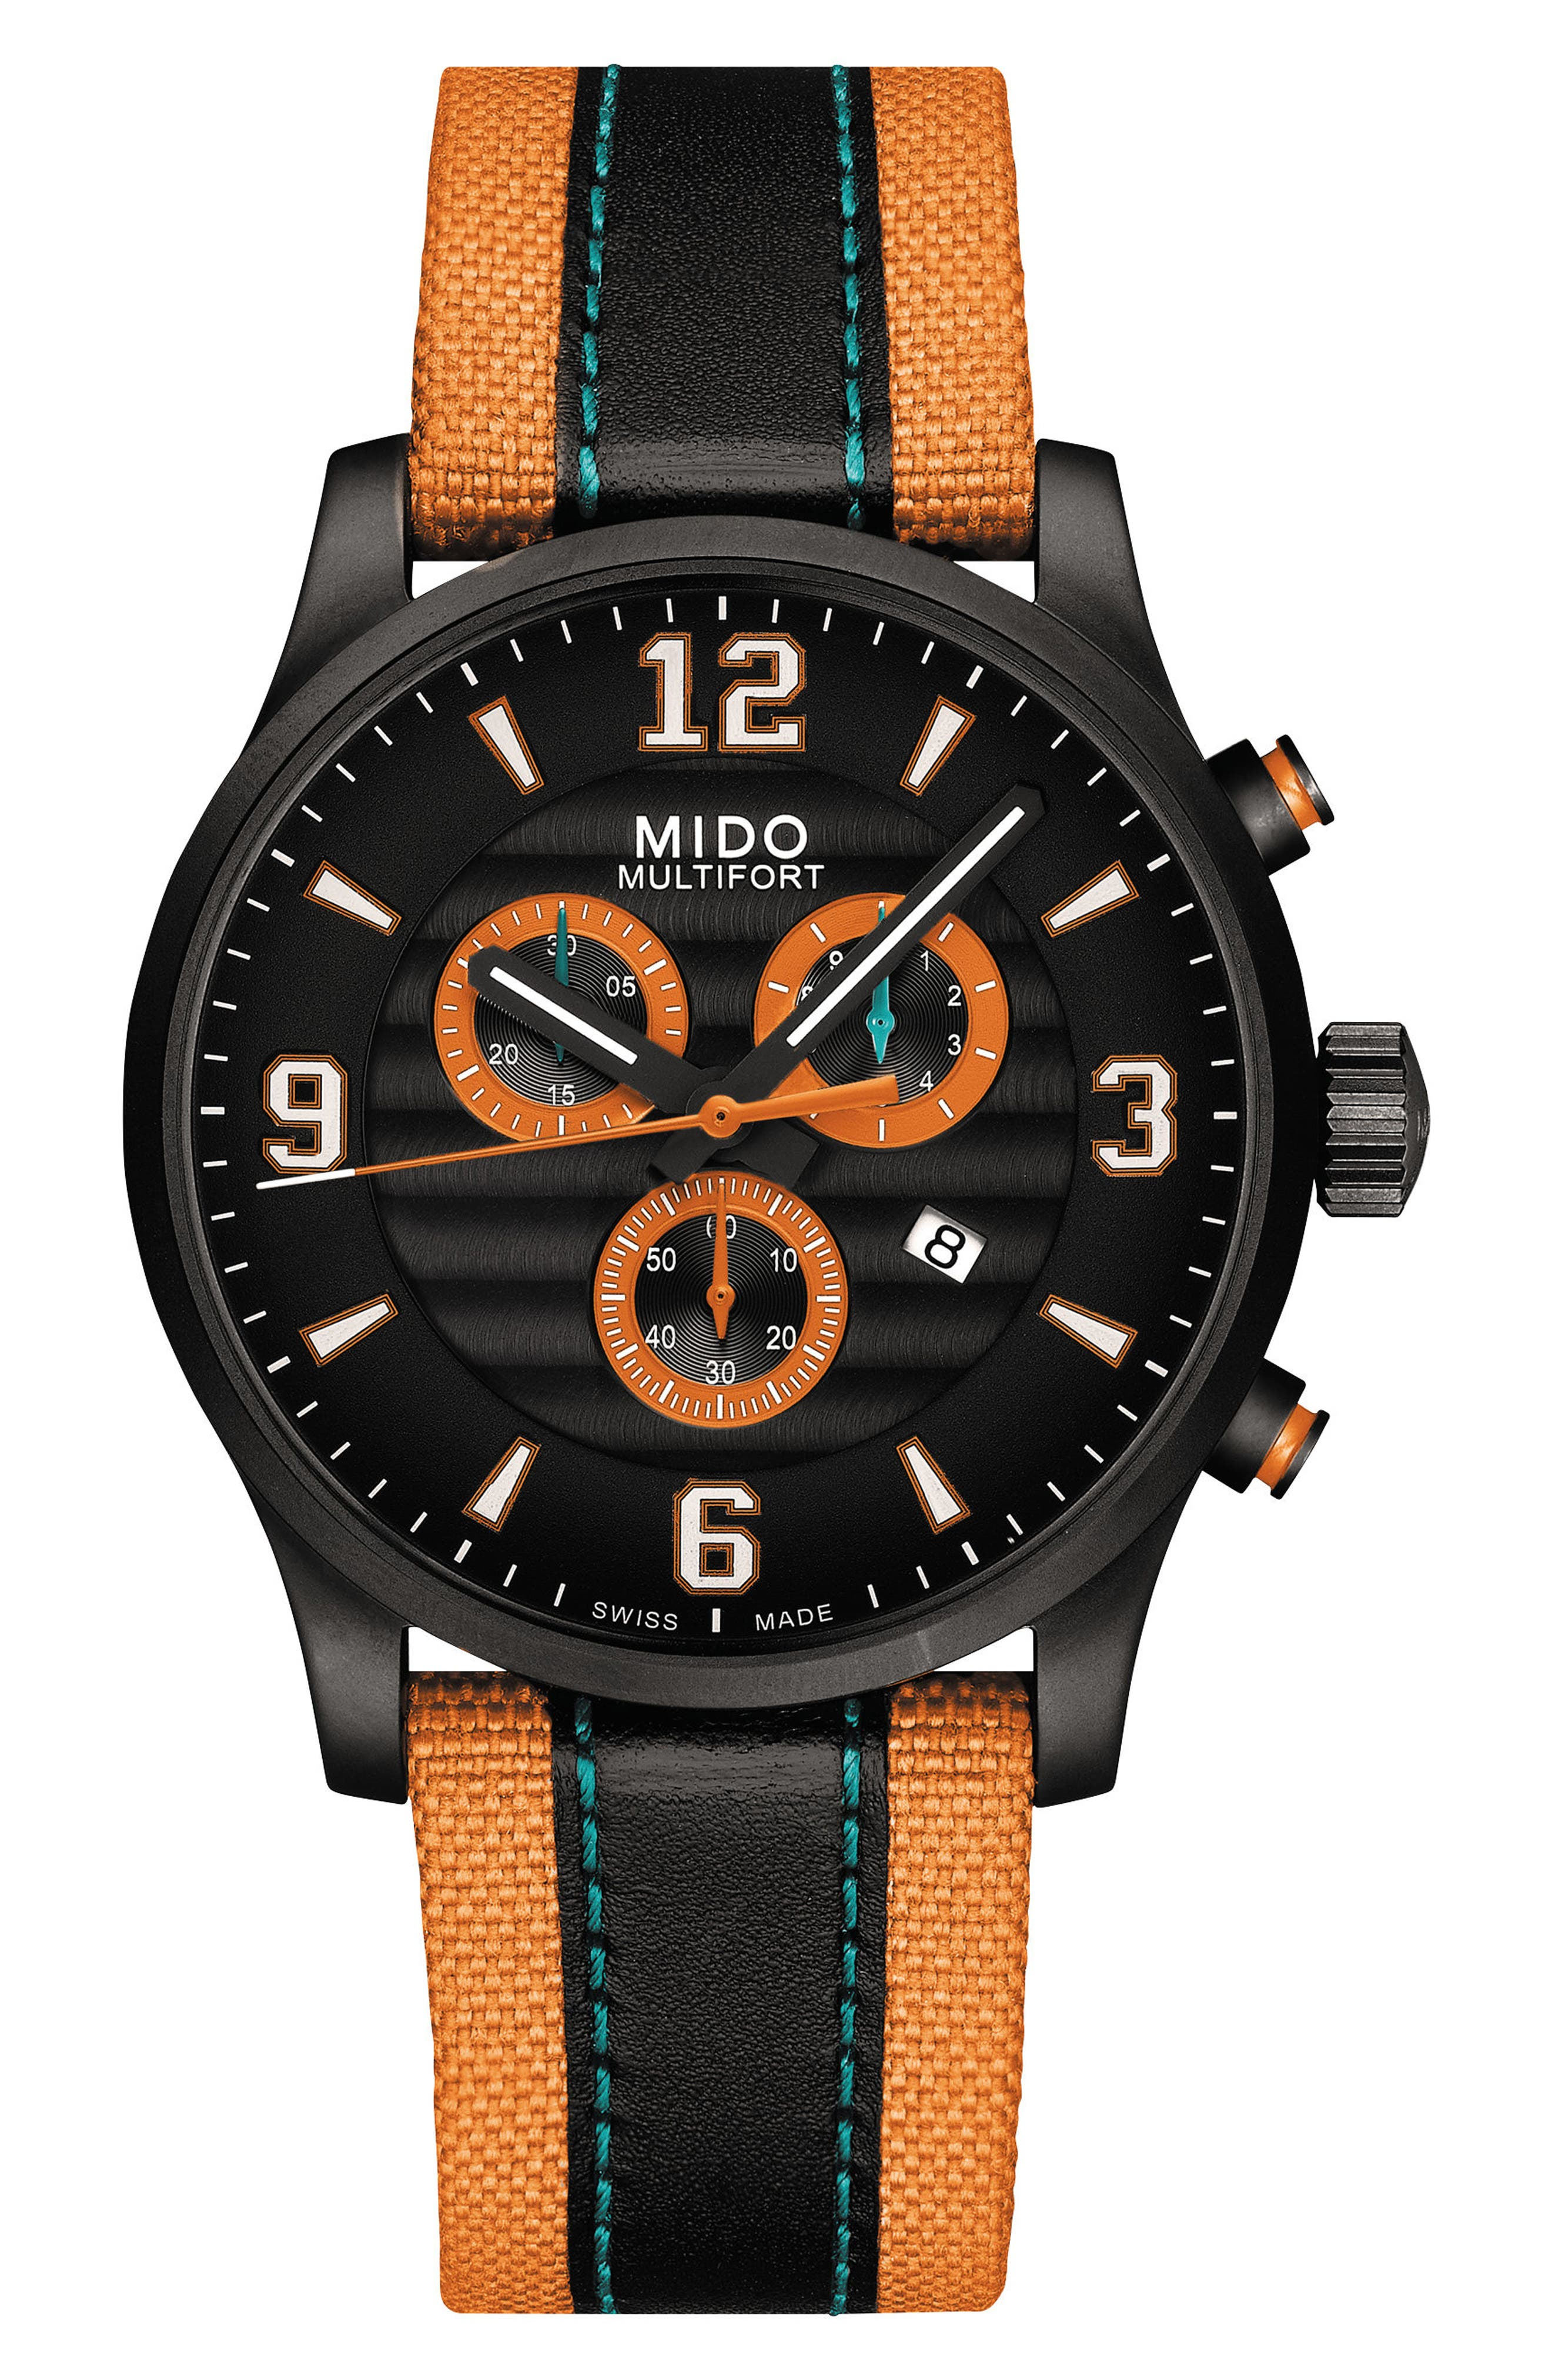 Main Image - MIDO Multifort University of Miami Chronograph Nylon Strap Watch, 42mm